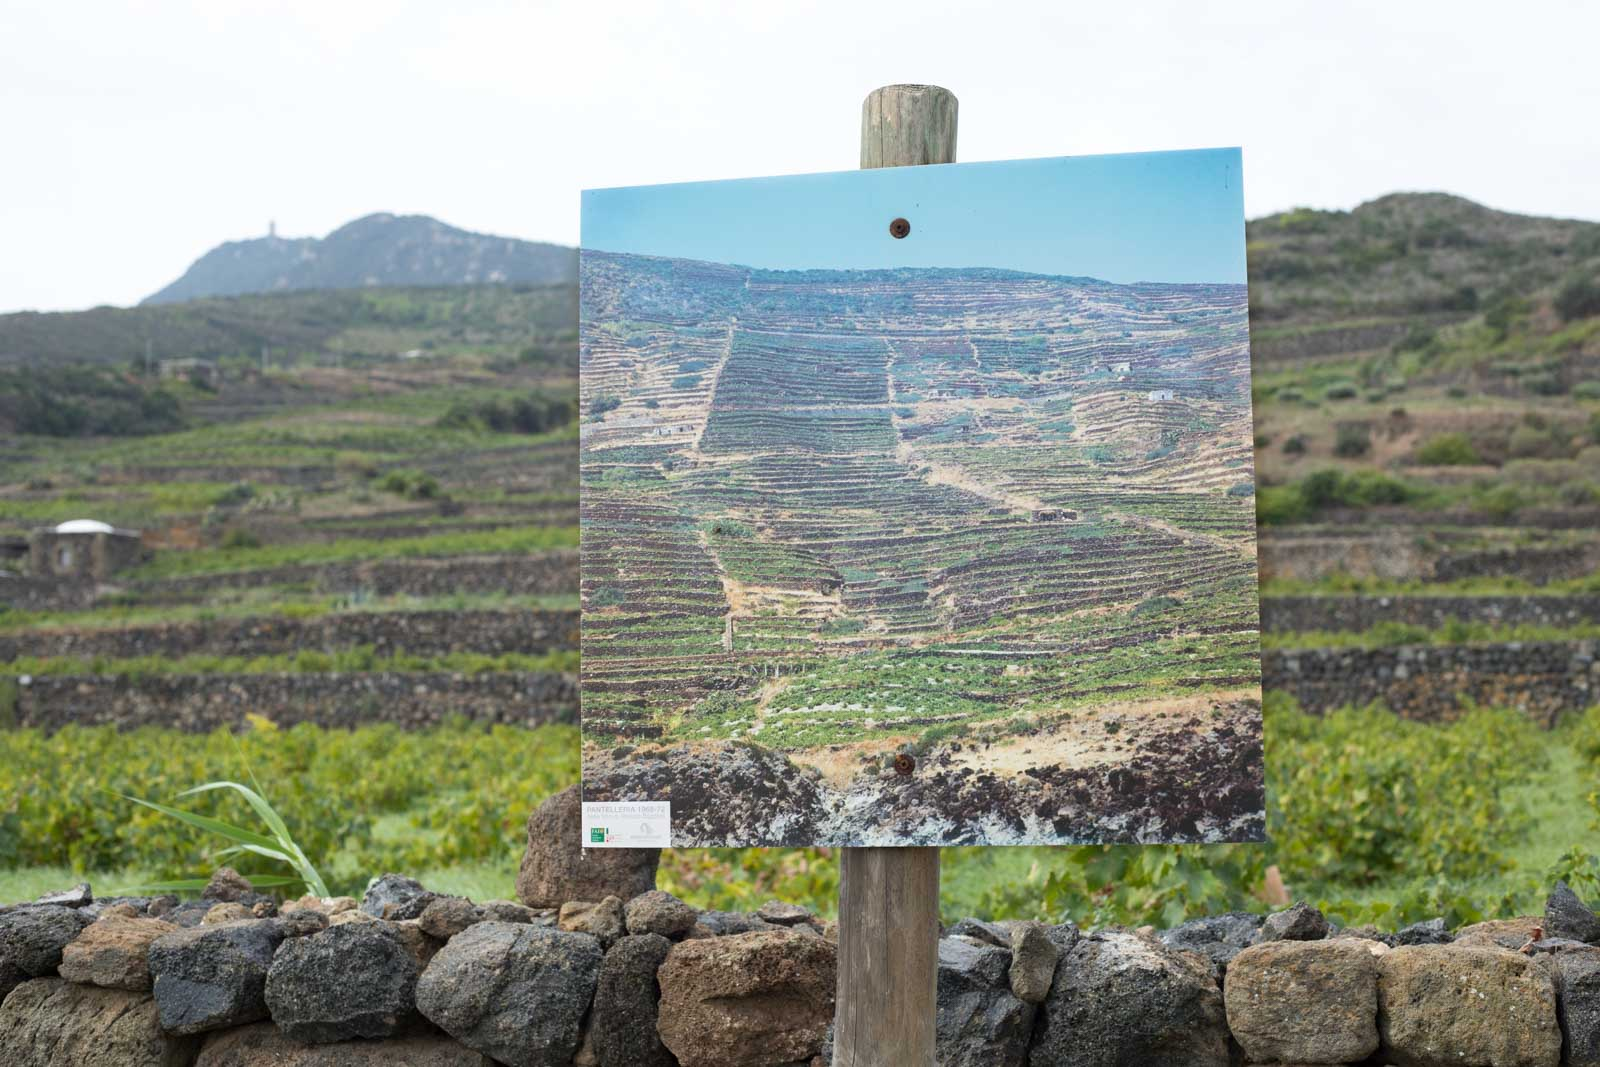 Over the years, many terraces have been abandoned. Donnafugata has an outdoor photo gallery which shows what the island was like 50 years ago at the height of grape production. ©Kevin Day/Opening a Bottle